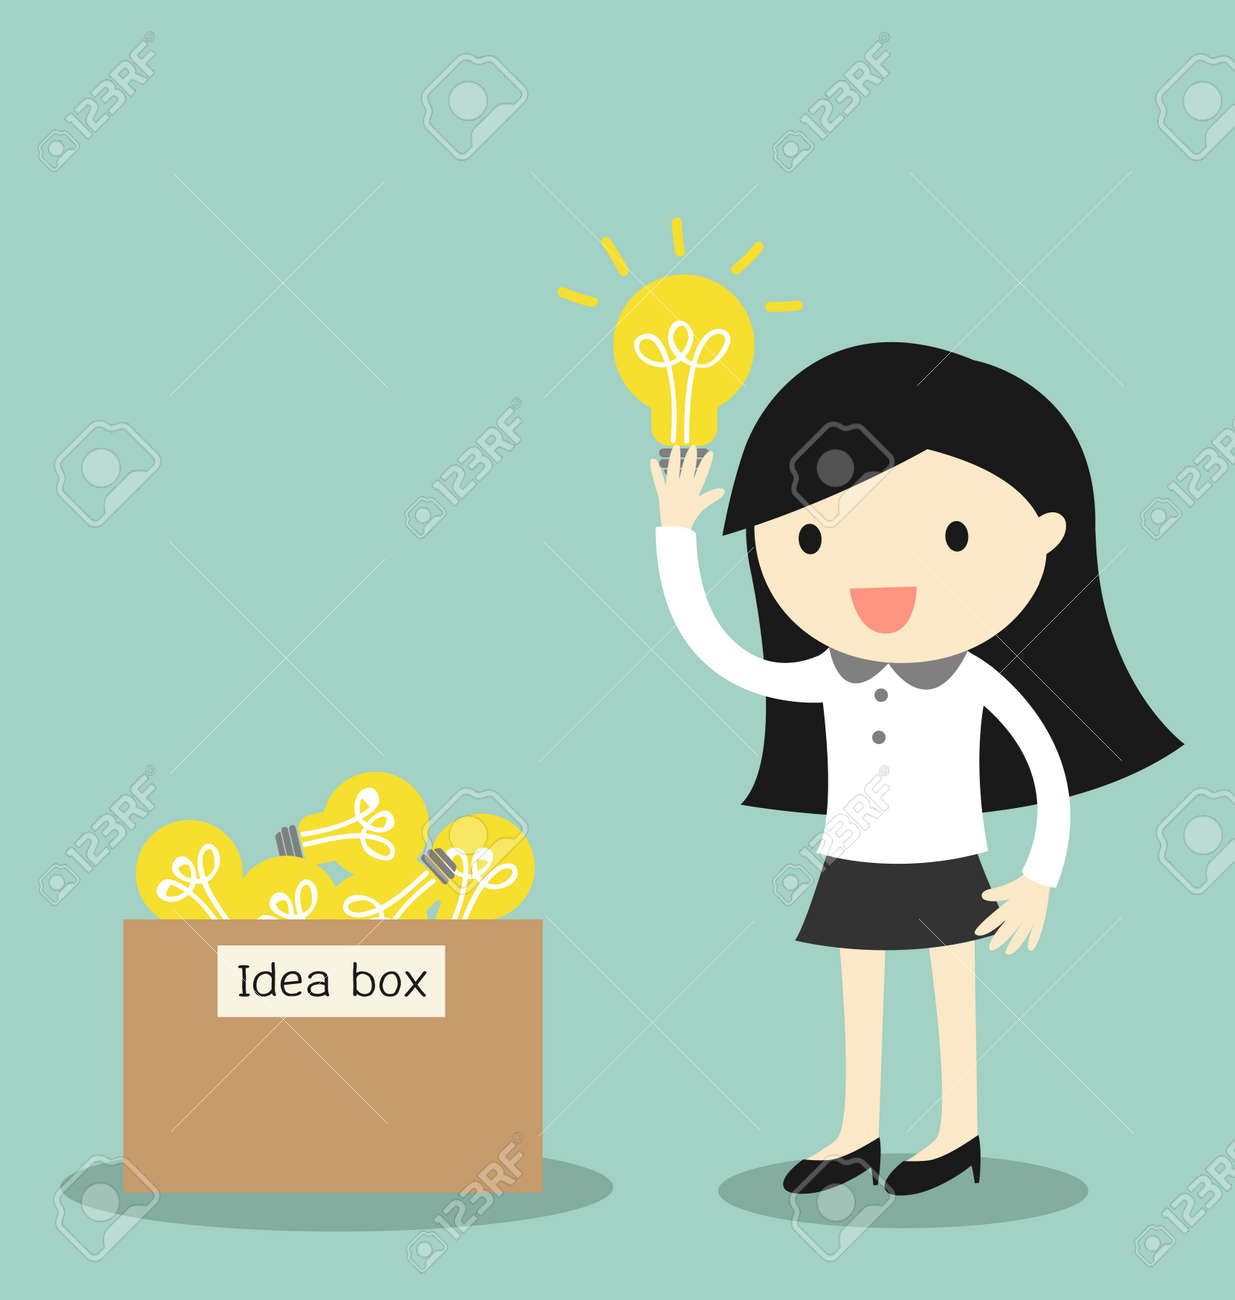 Business concept, Business woman pick some idea from idea box. illustration. - 50077463